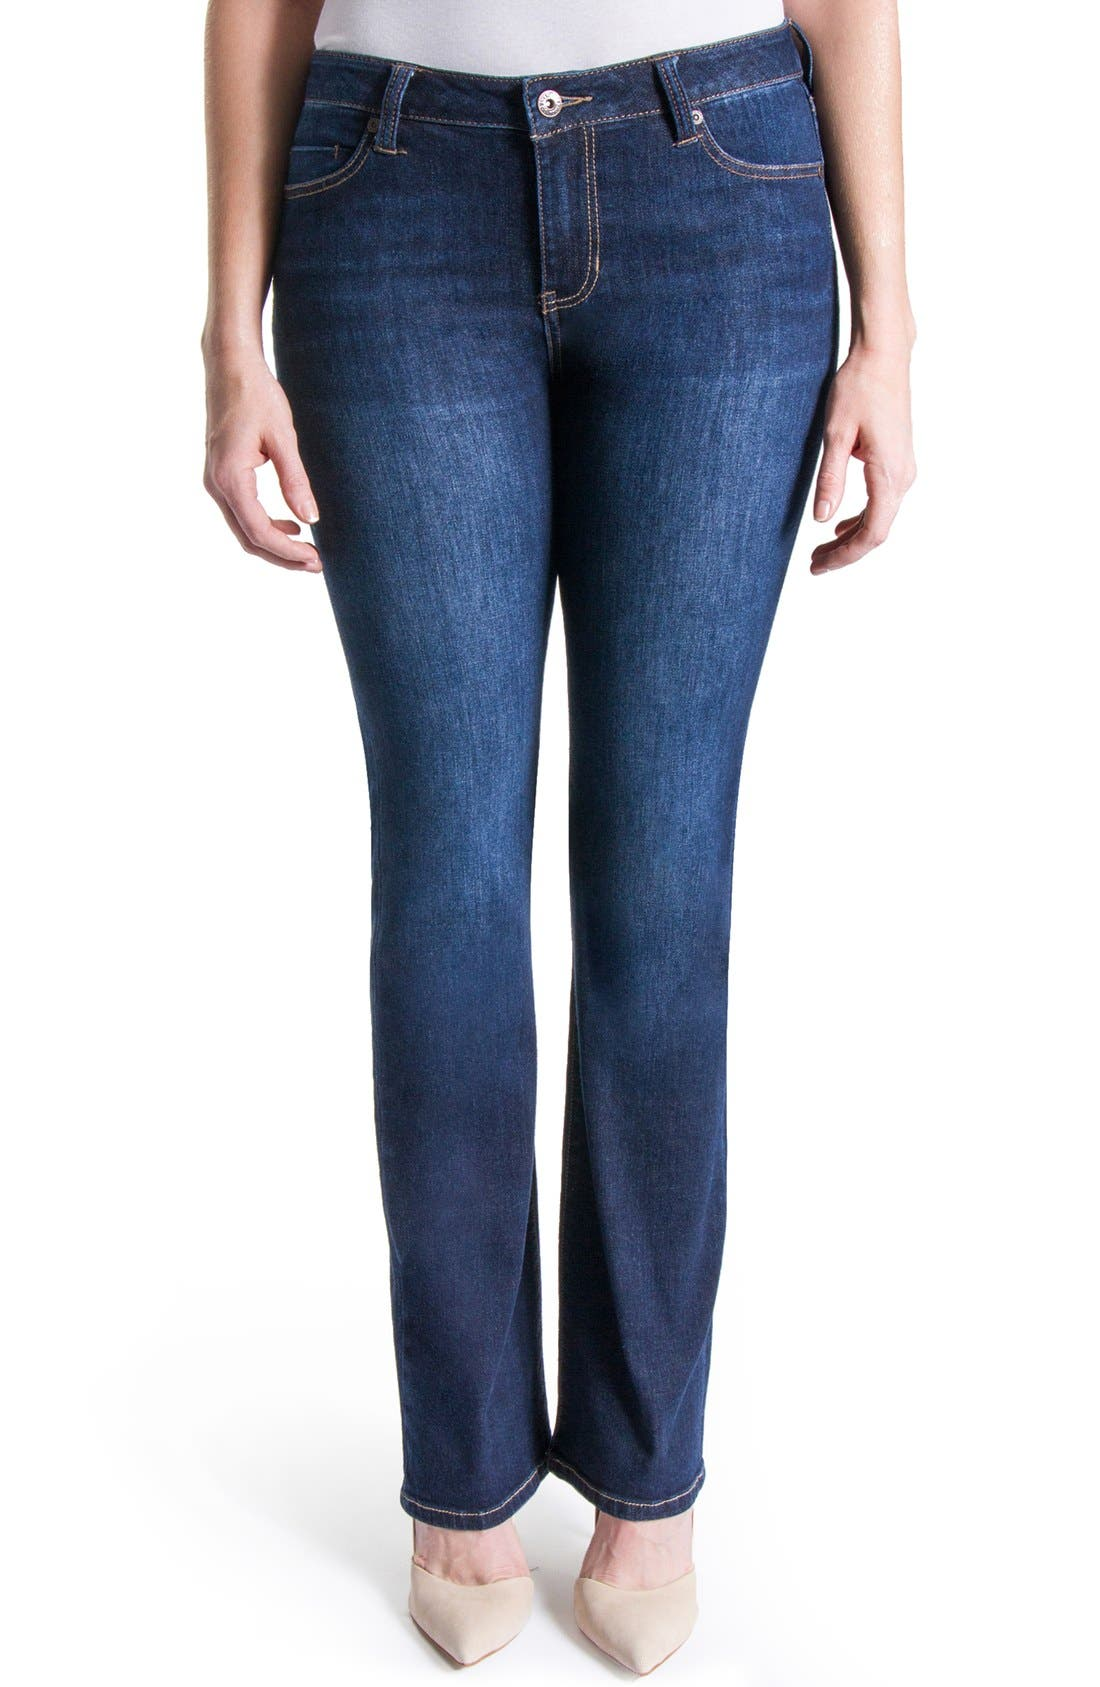 How wide are bootcut jeans